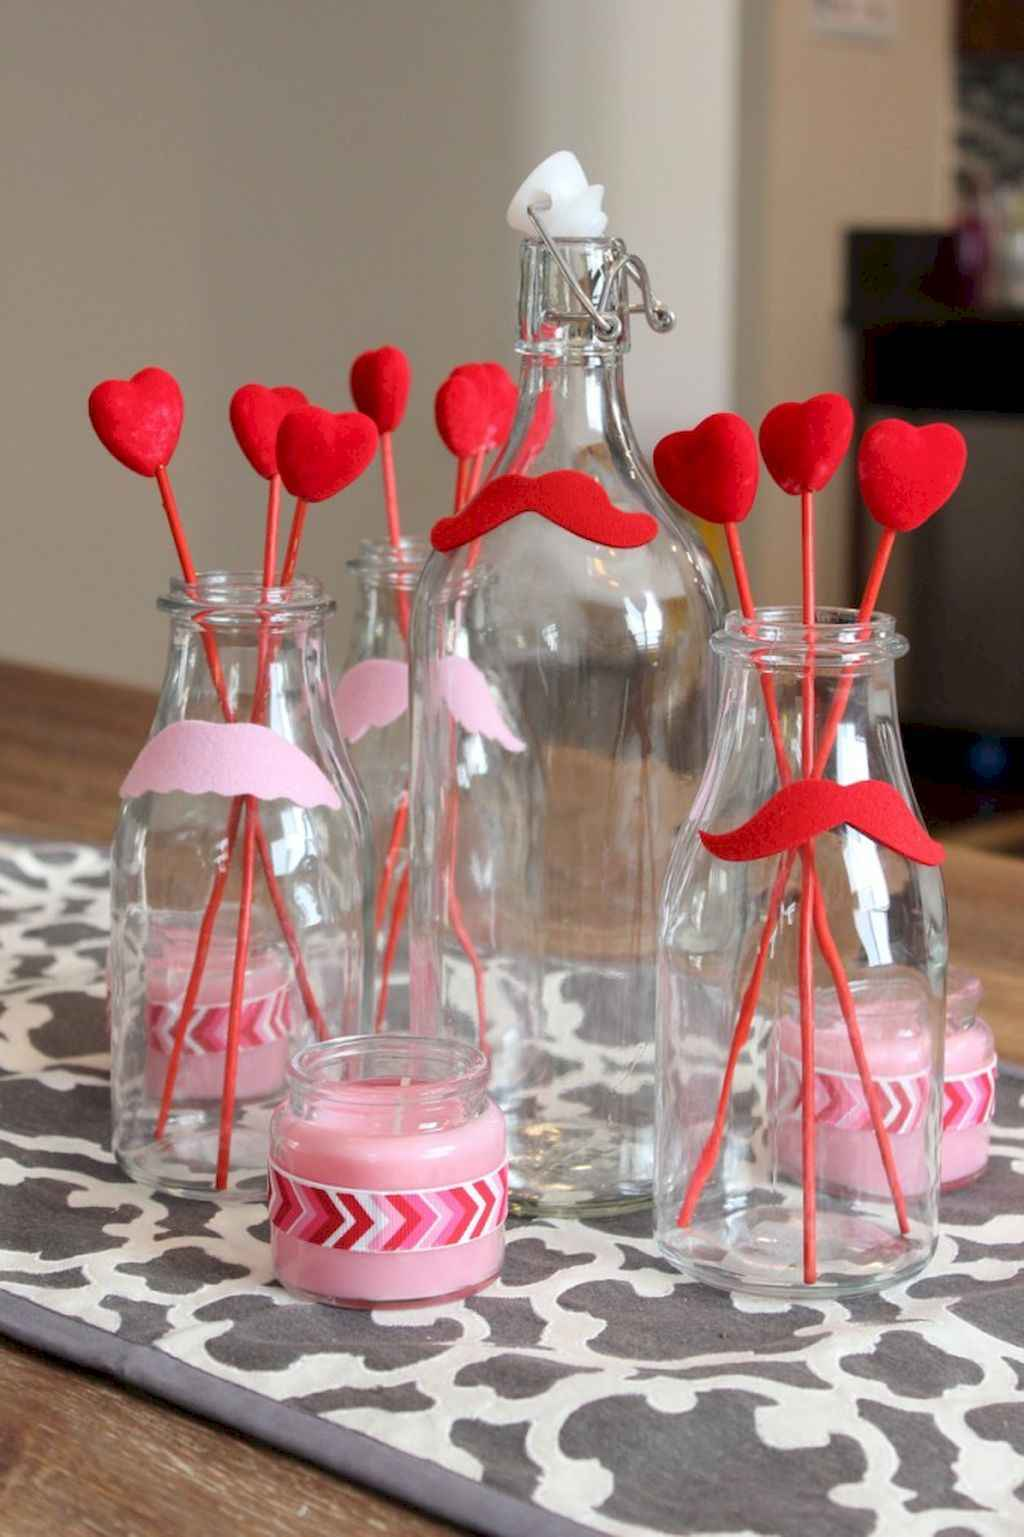 40 Romantic Valentines Decorations Dollar Tree Ideas On A Budget (42)